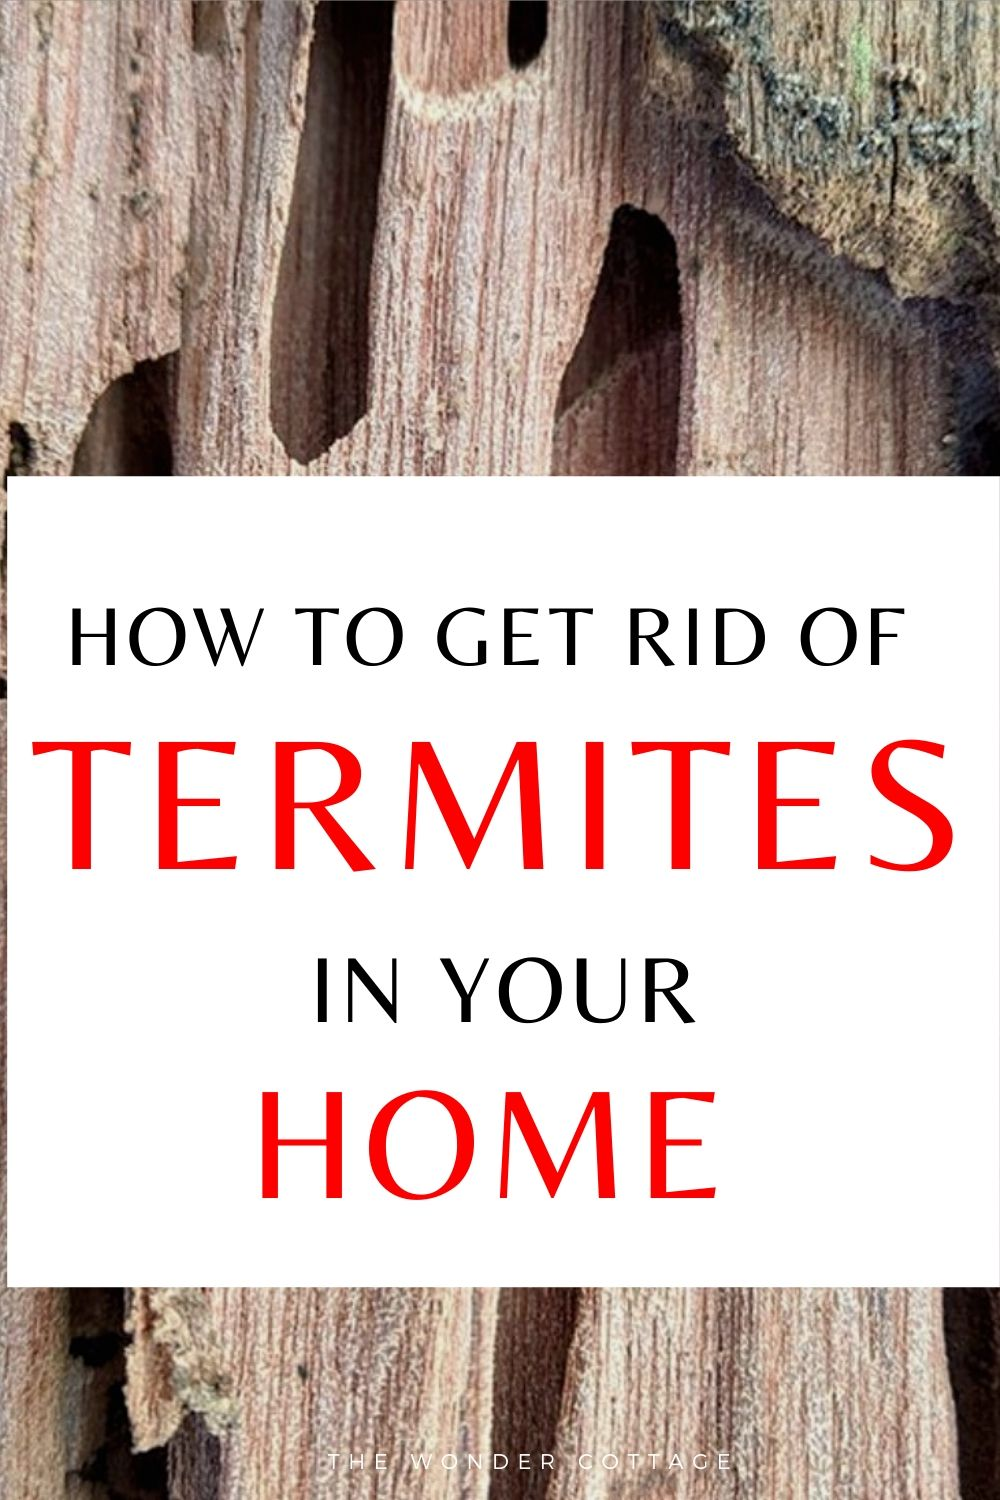 how to get rid of termites in your home